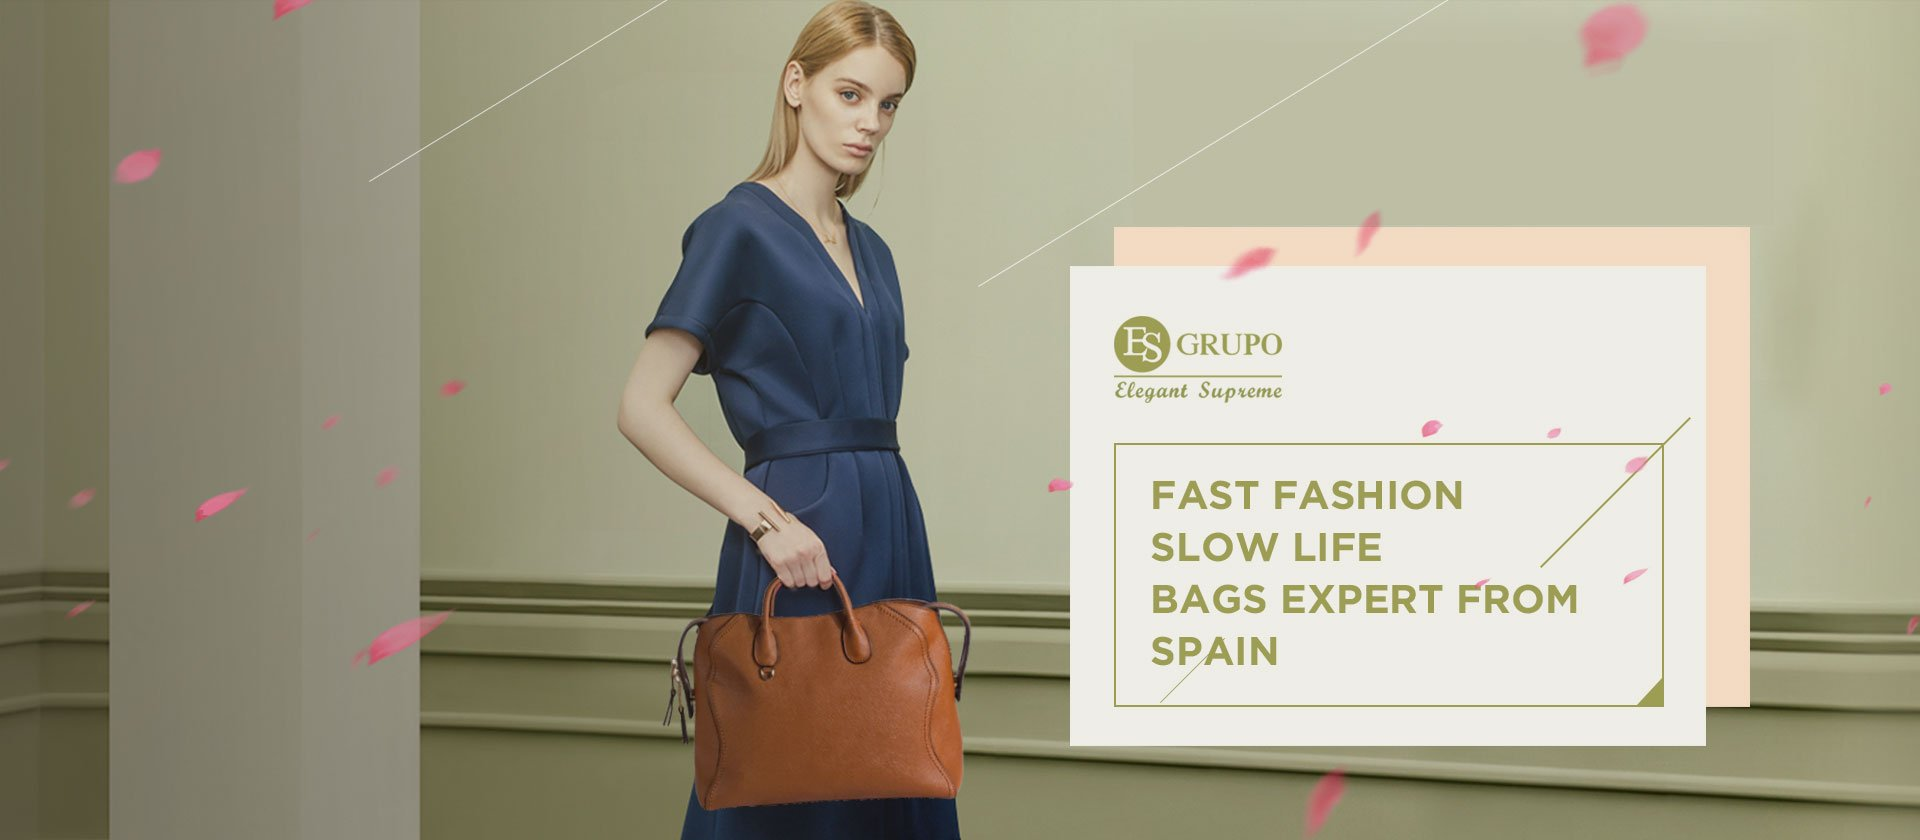 FAST FASHION SLOW LIFE BAGS EXPERT FROM SPAIN